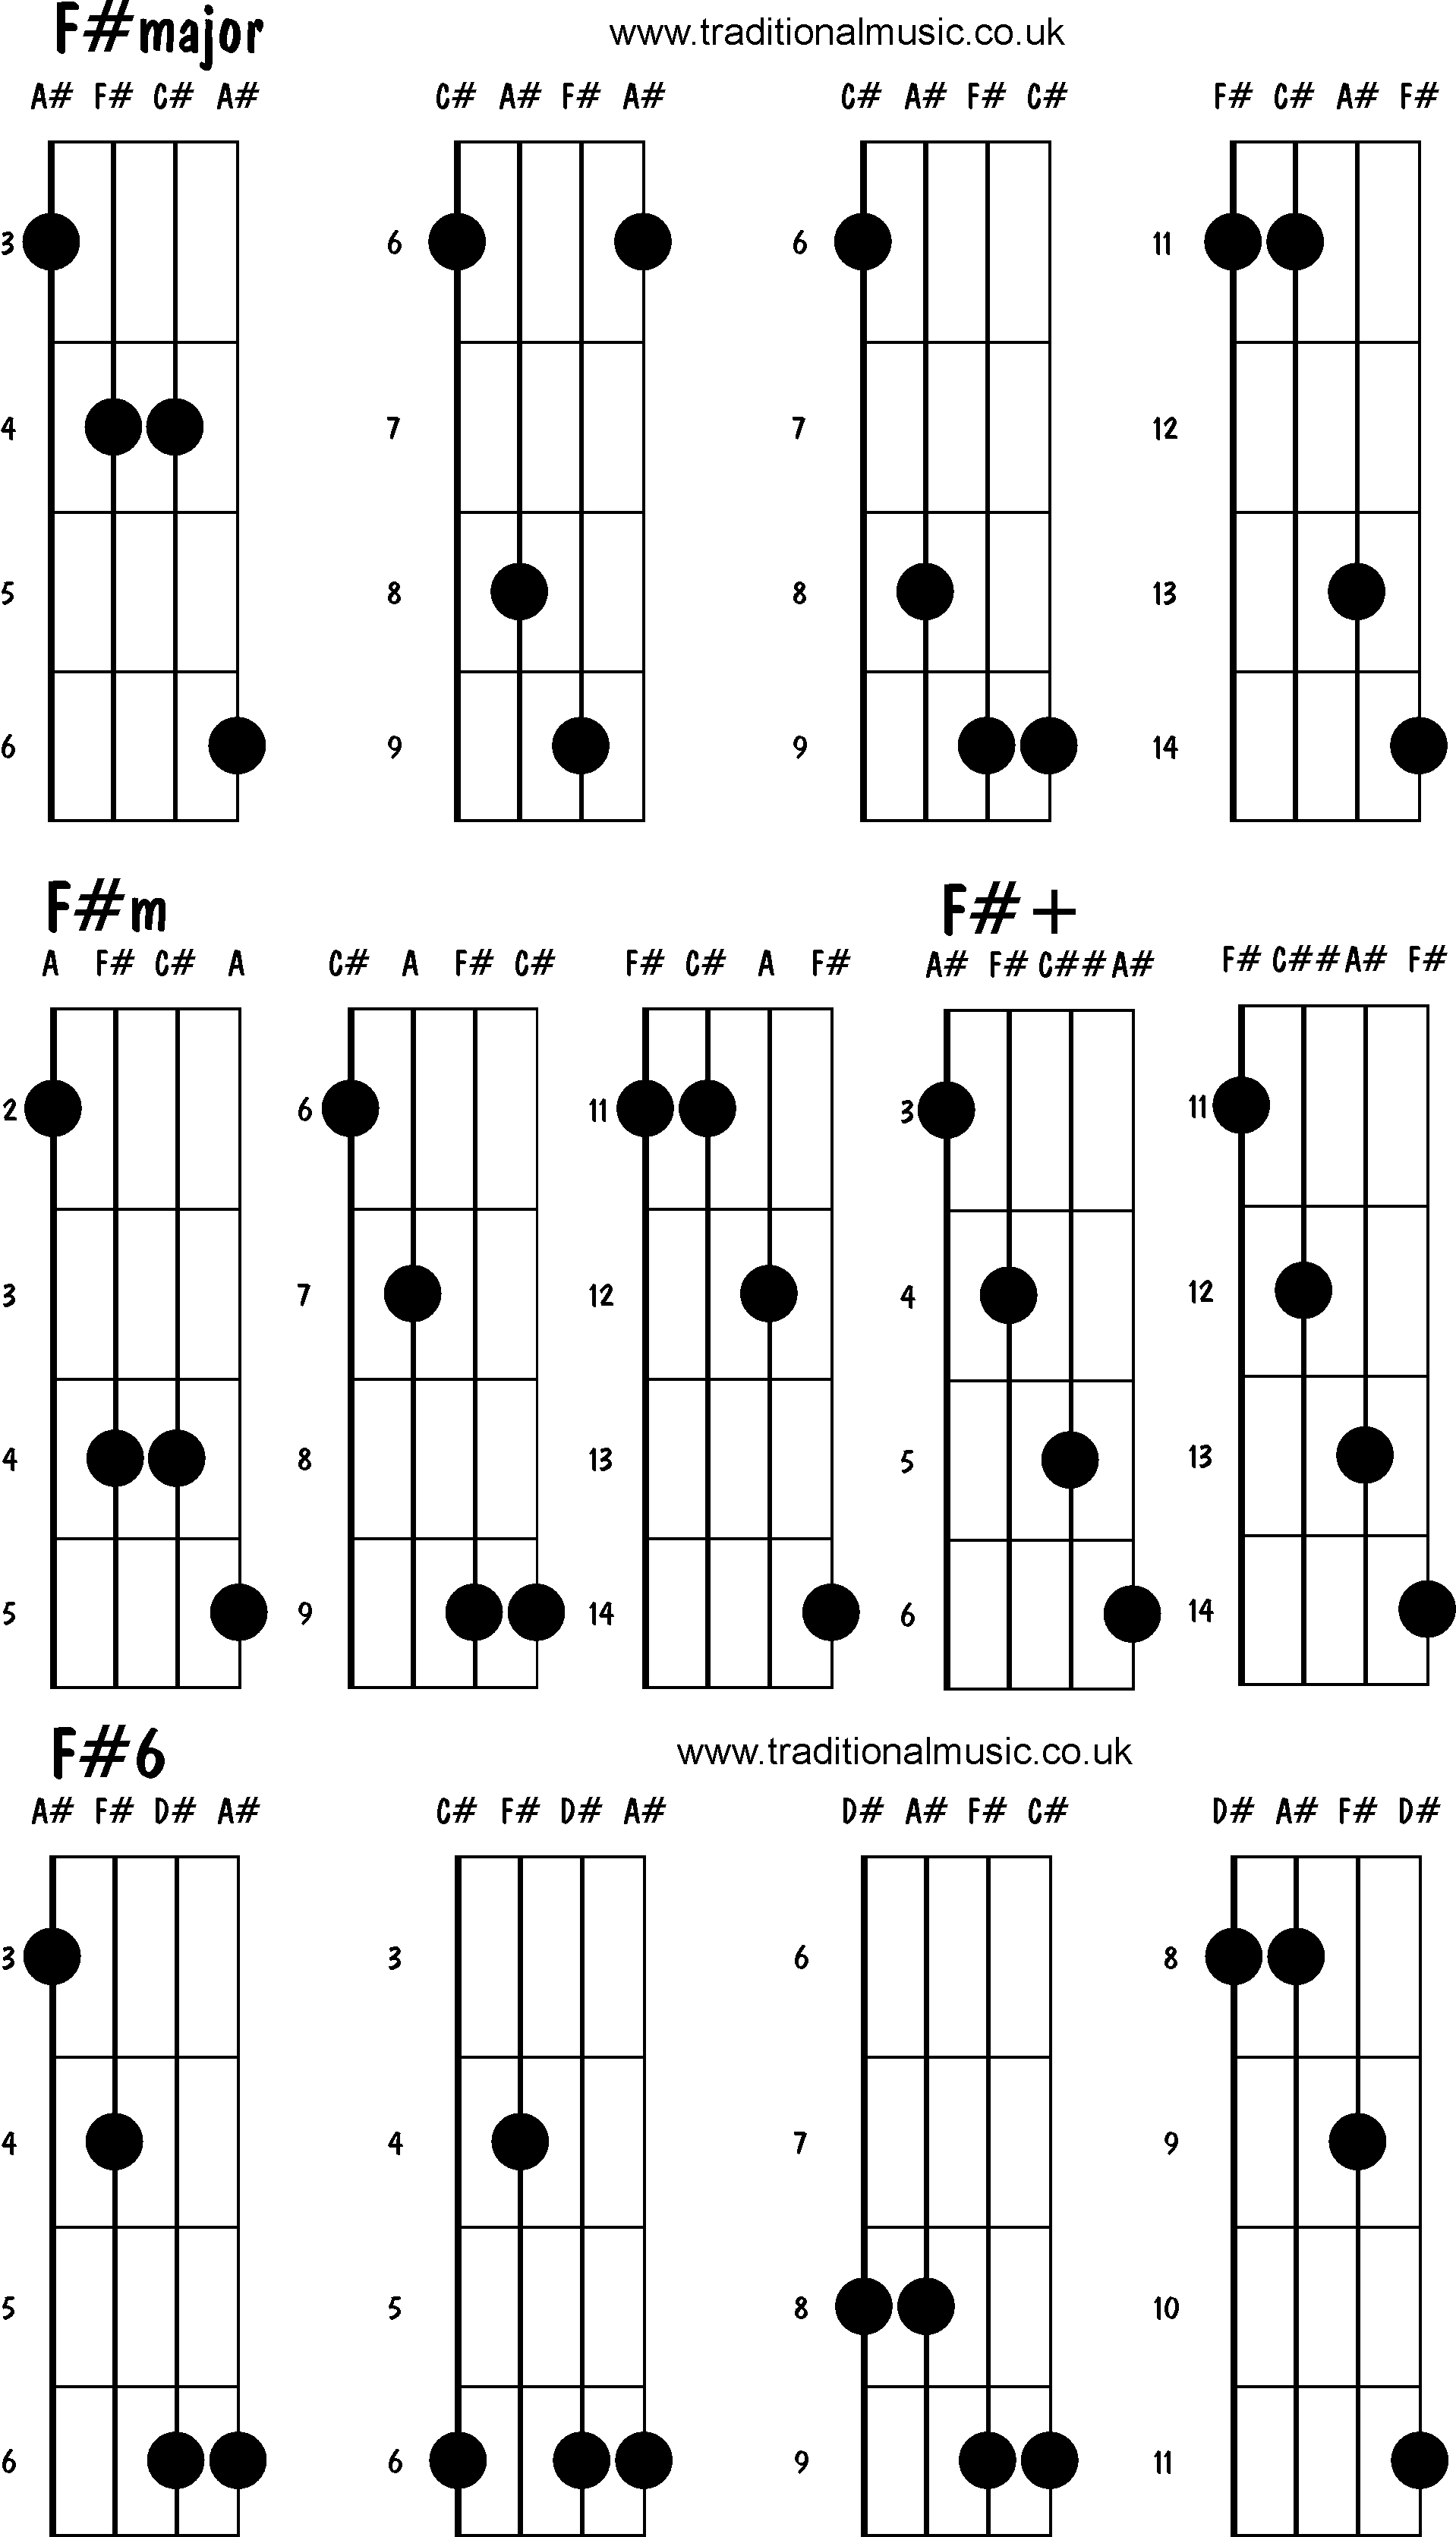 Mandolin chords advanced - F#major, F#m, F#+, F#6